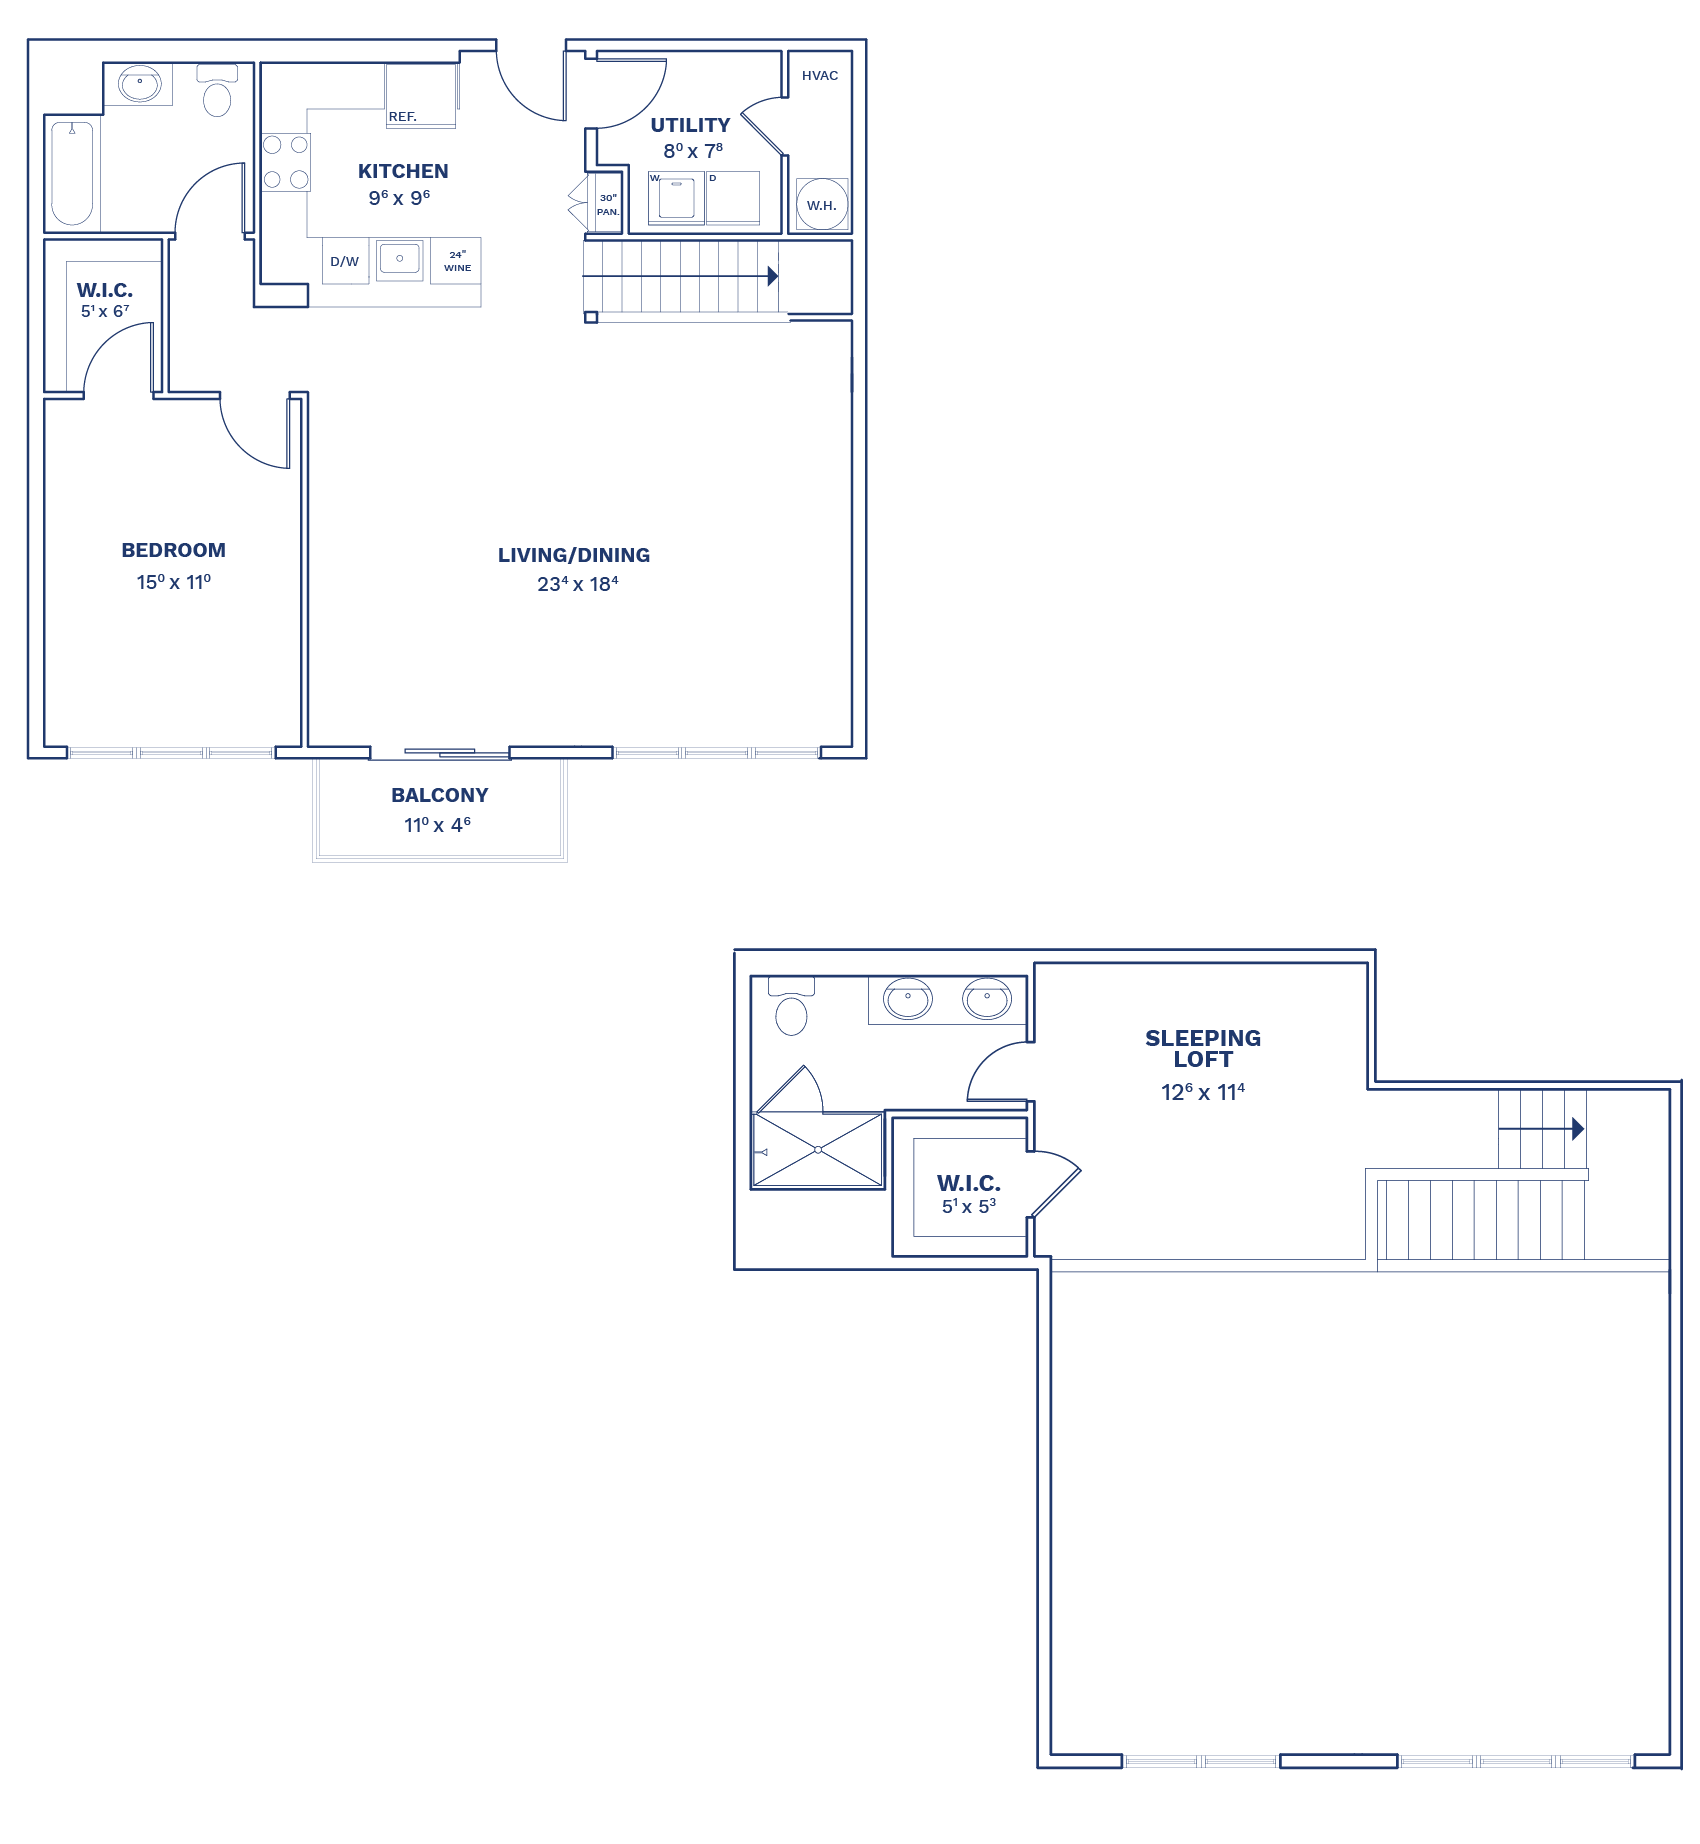 Floorplan of Unit B2.1 Loft